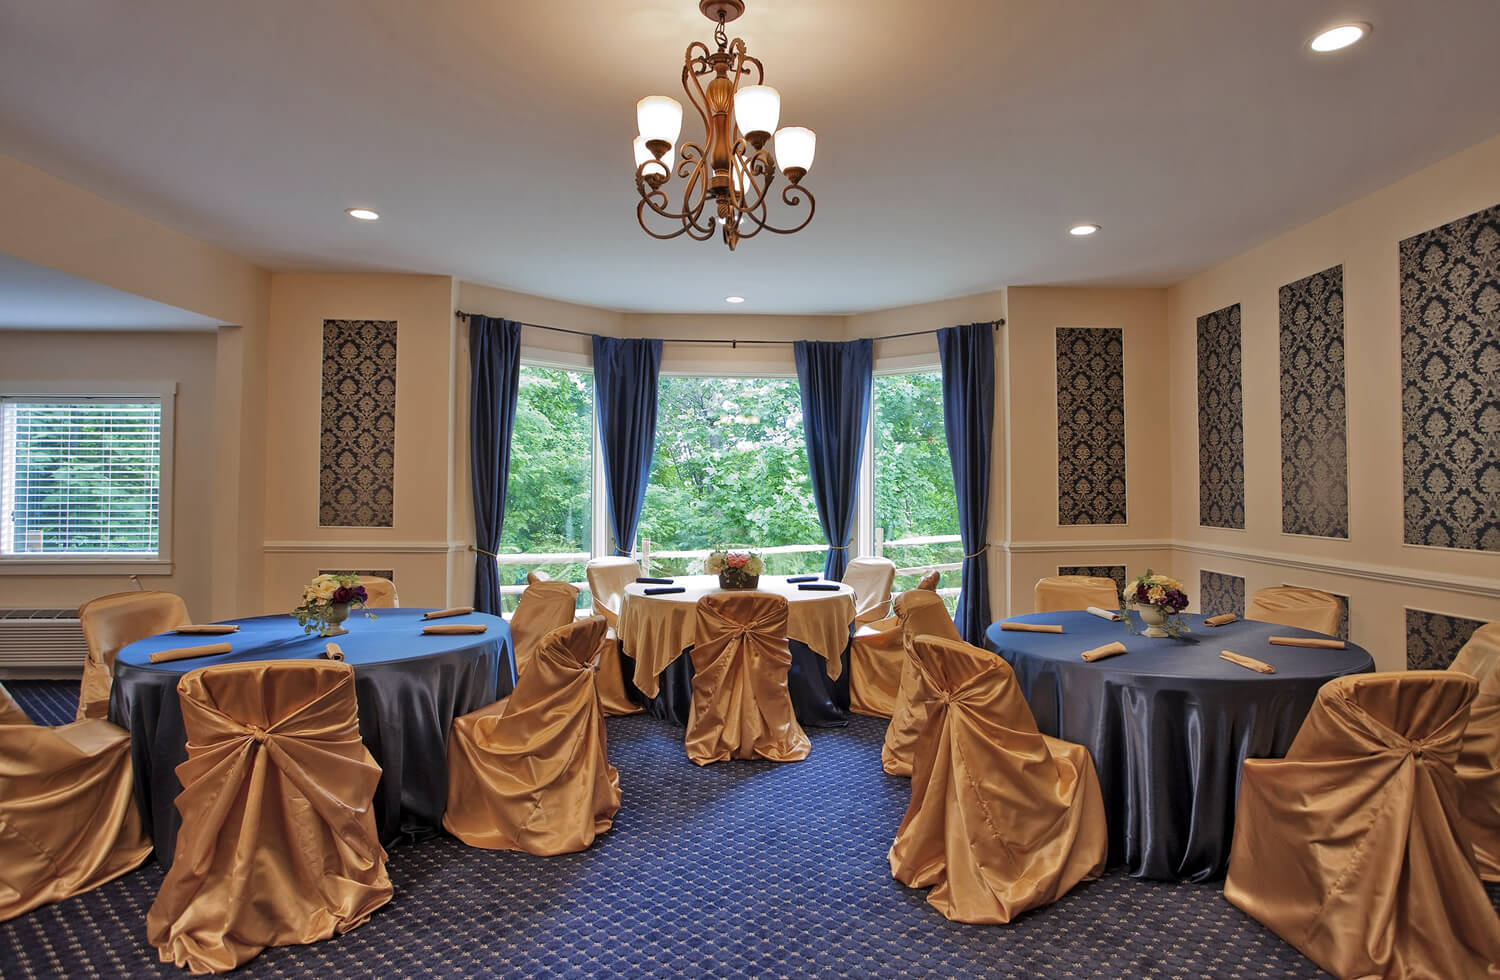 Large meeting room with classic look. Blue and gold tones in a wall paper and carpet. Large champagne chandelier in a middle of a tall ceiling. Three round tables decorated in satin blue and gold table cloth and napkins.